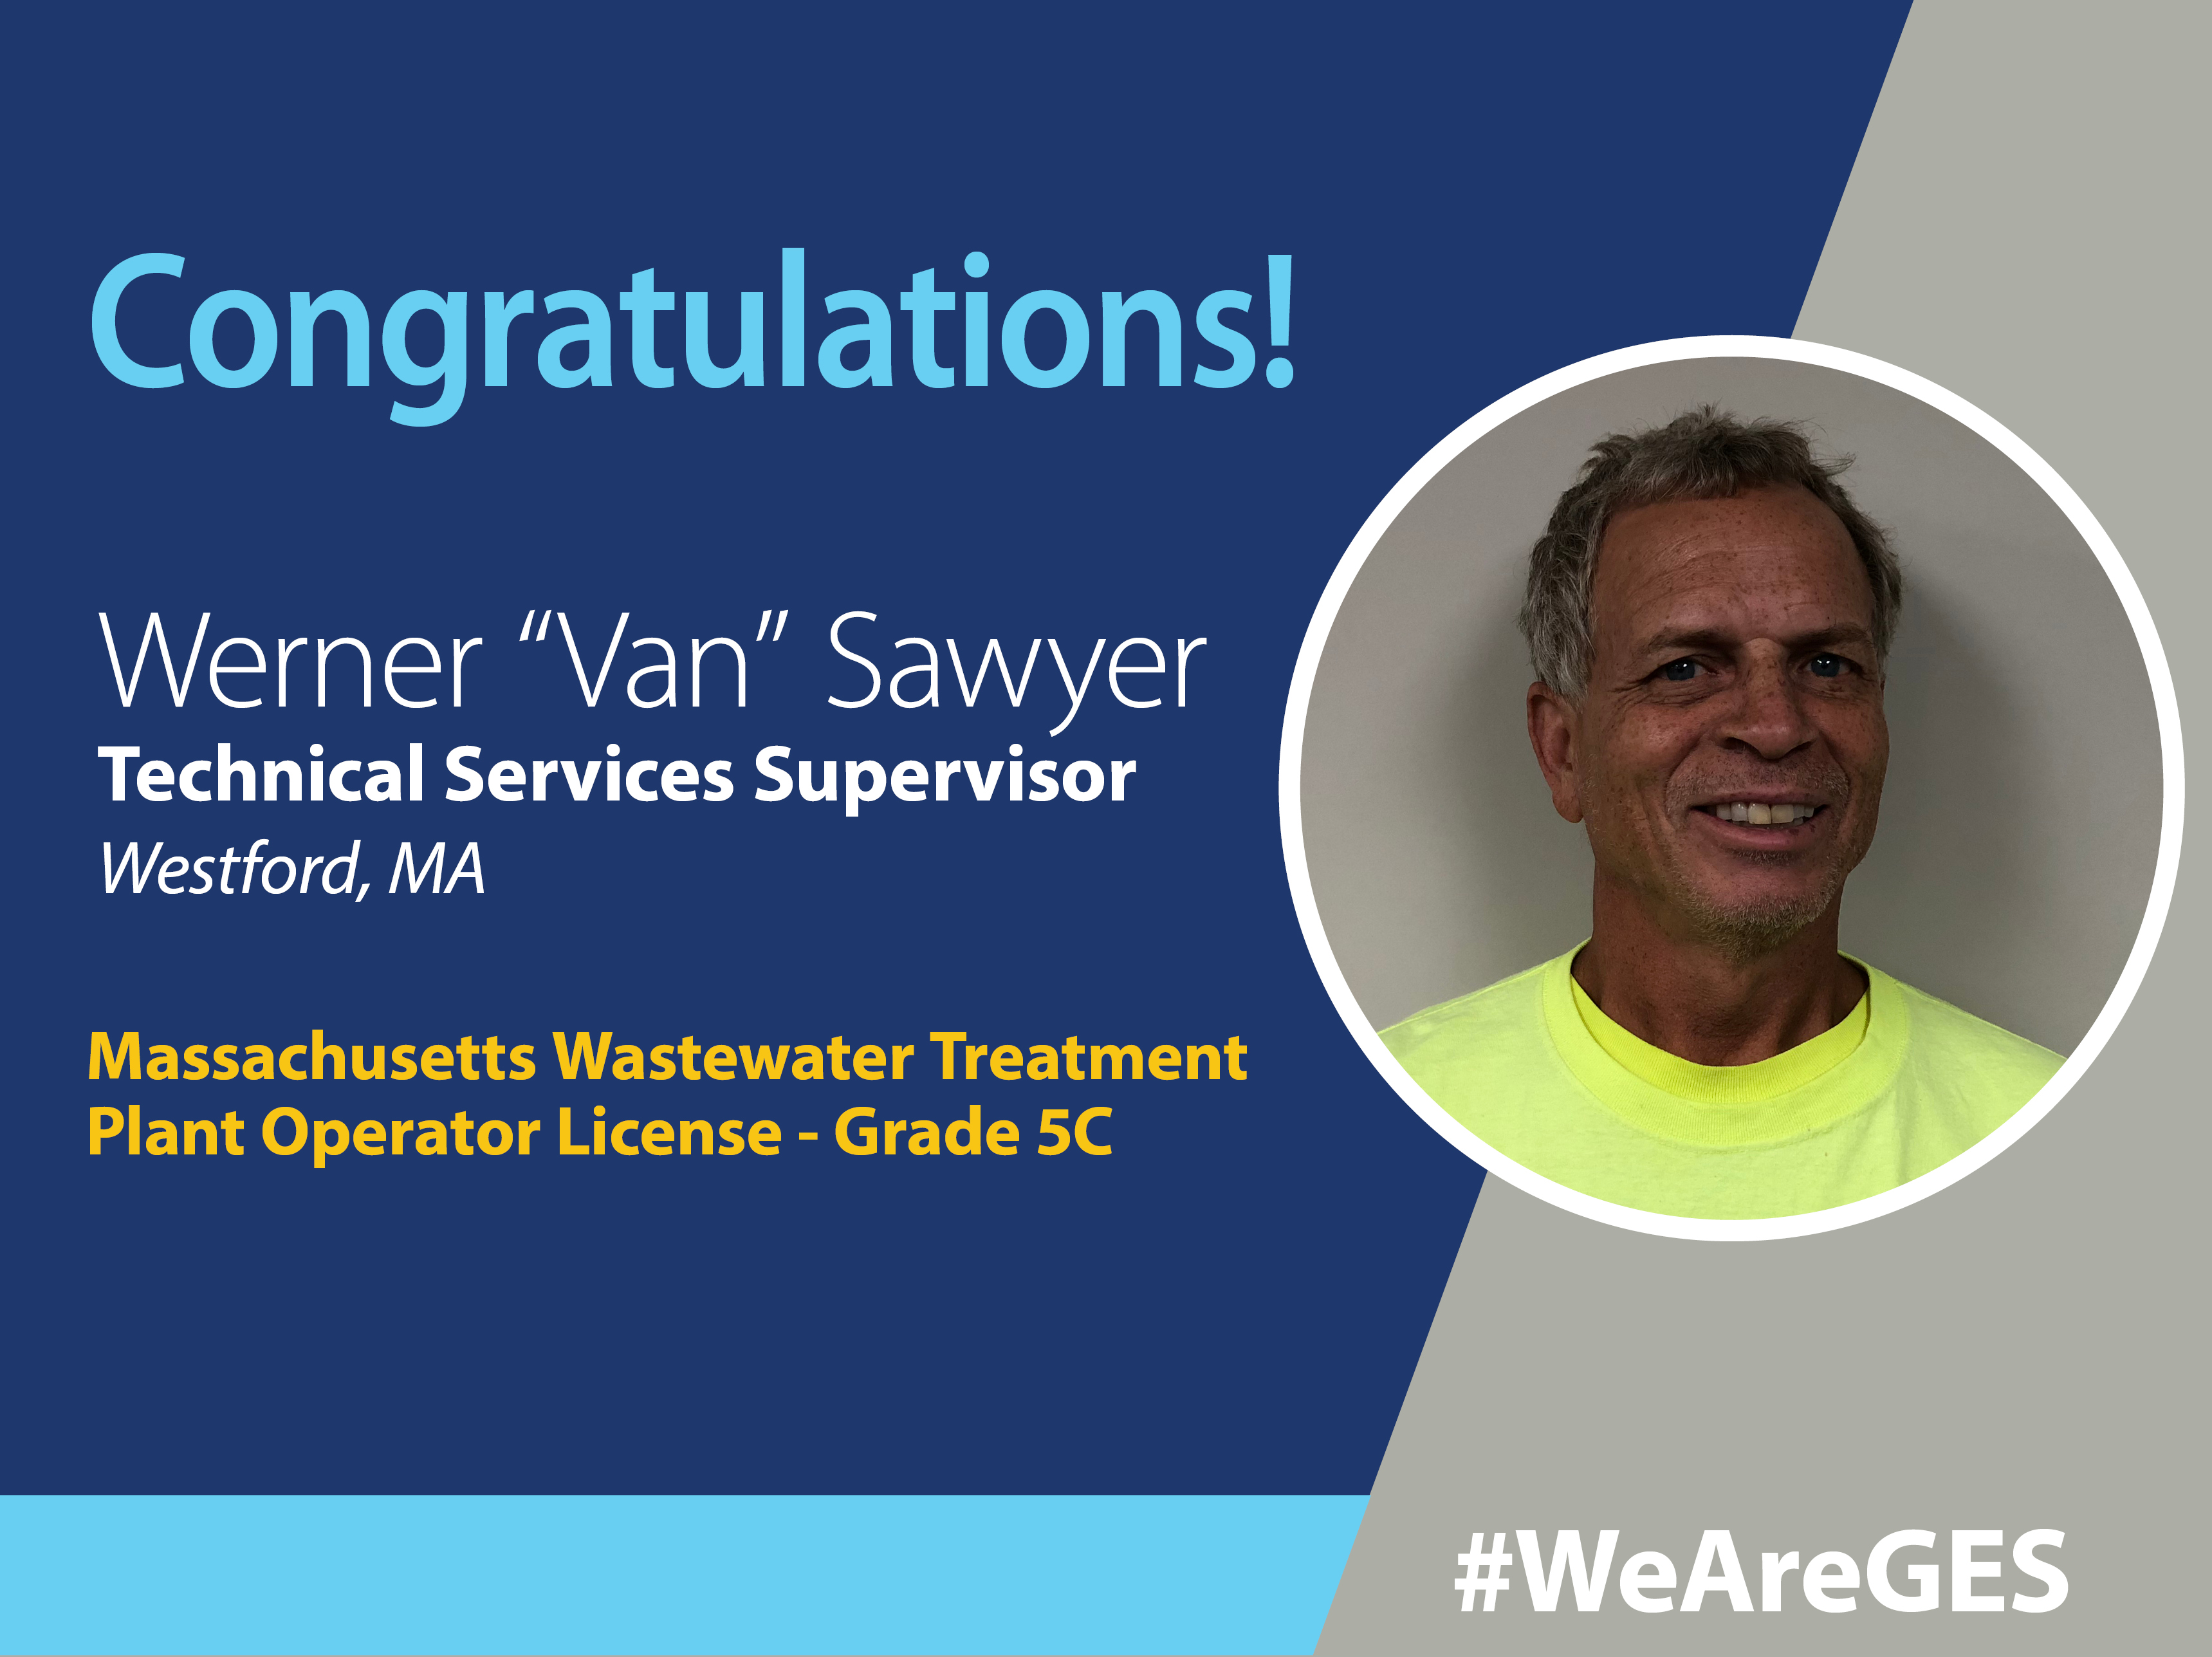 Werner (Van) Sawyer Achieves Grade 5C Operator License